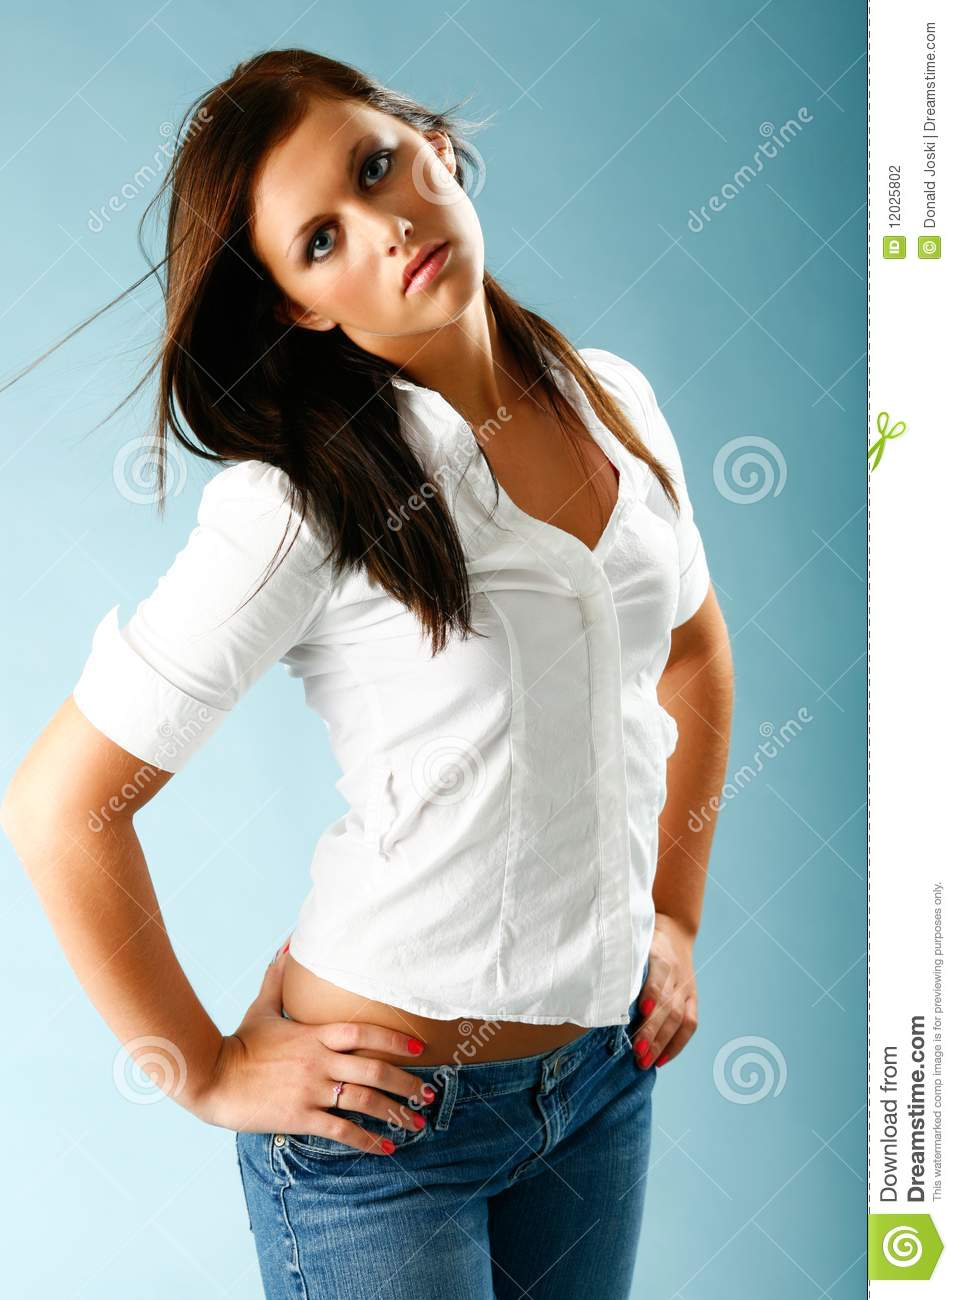 Woman With Blouse Unbuttoned 55